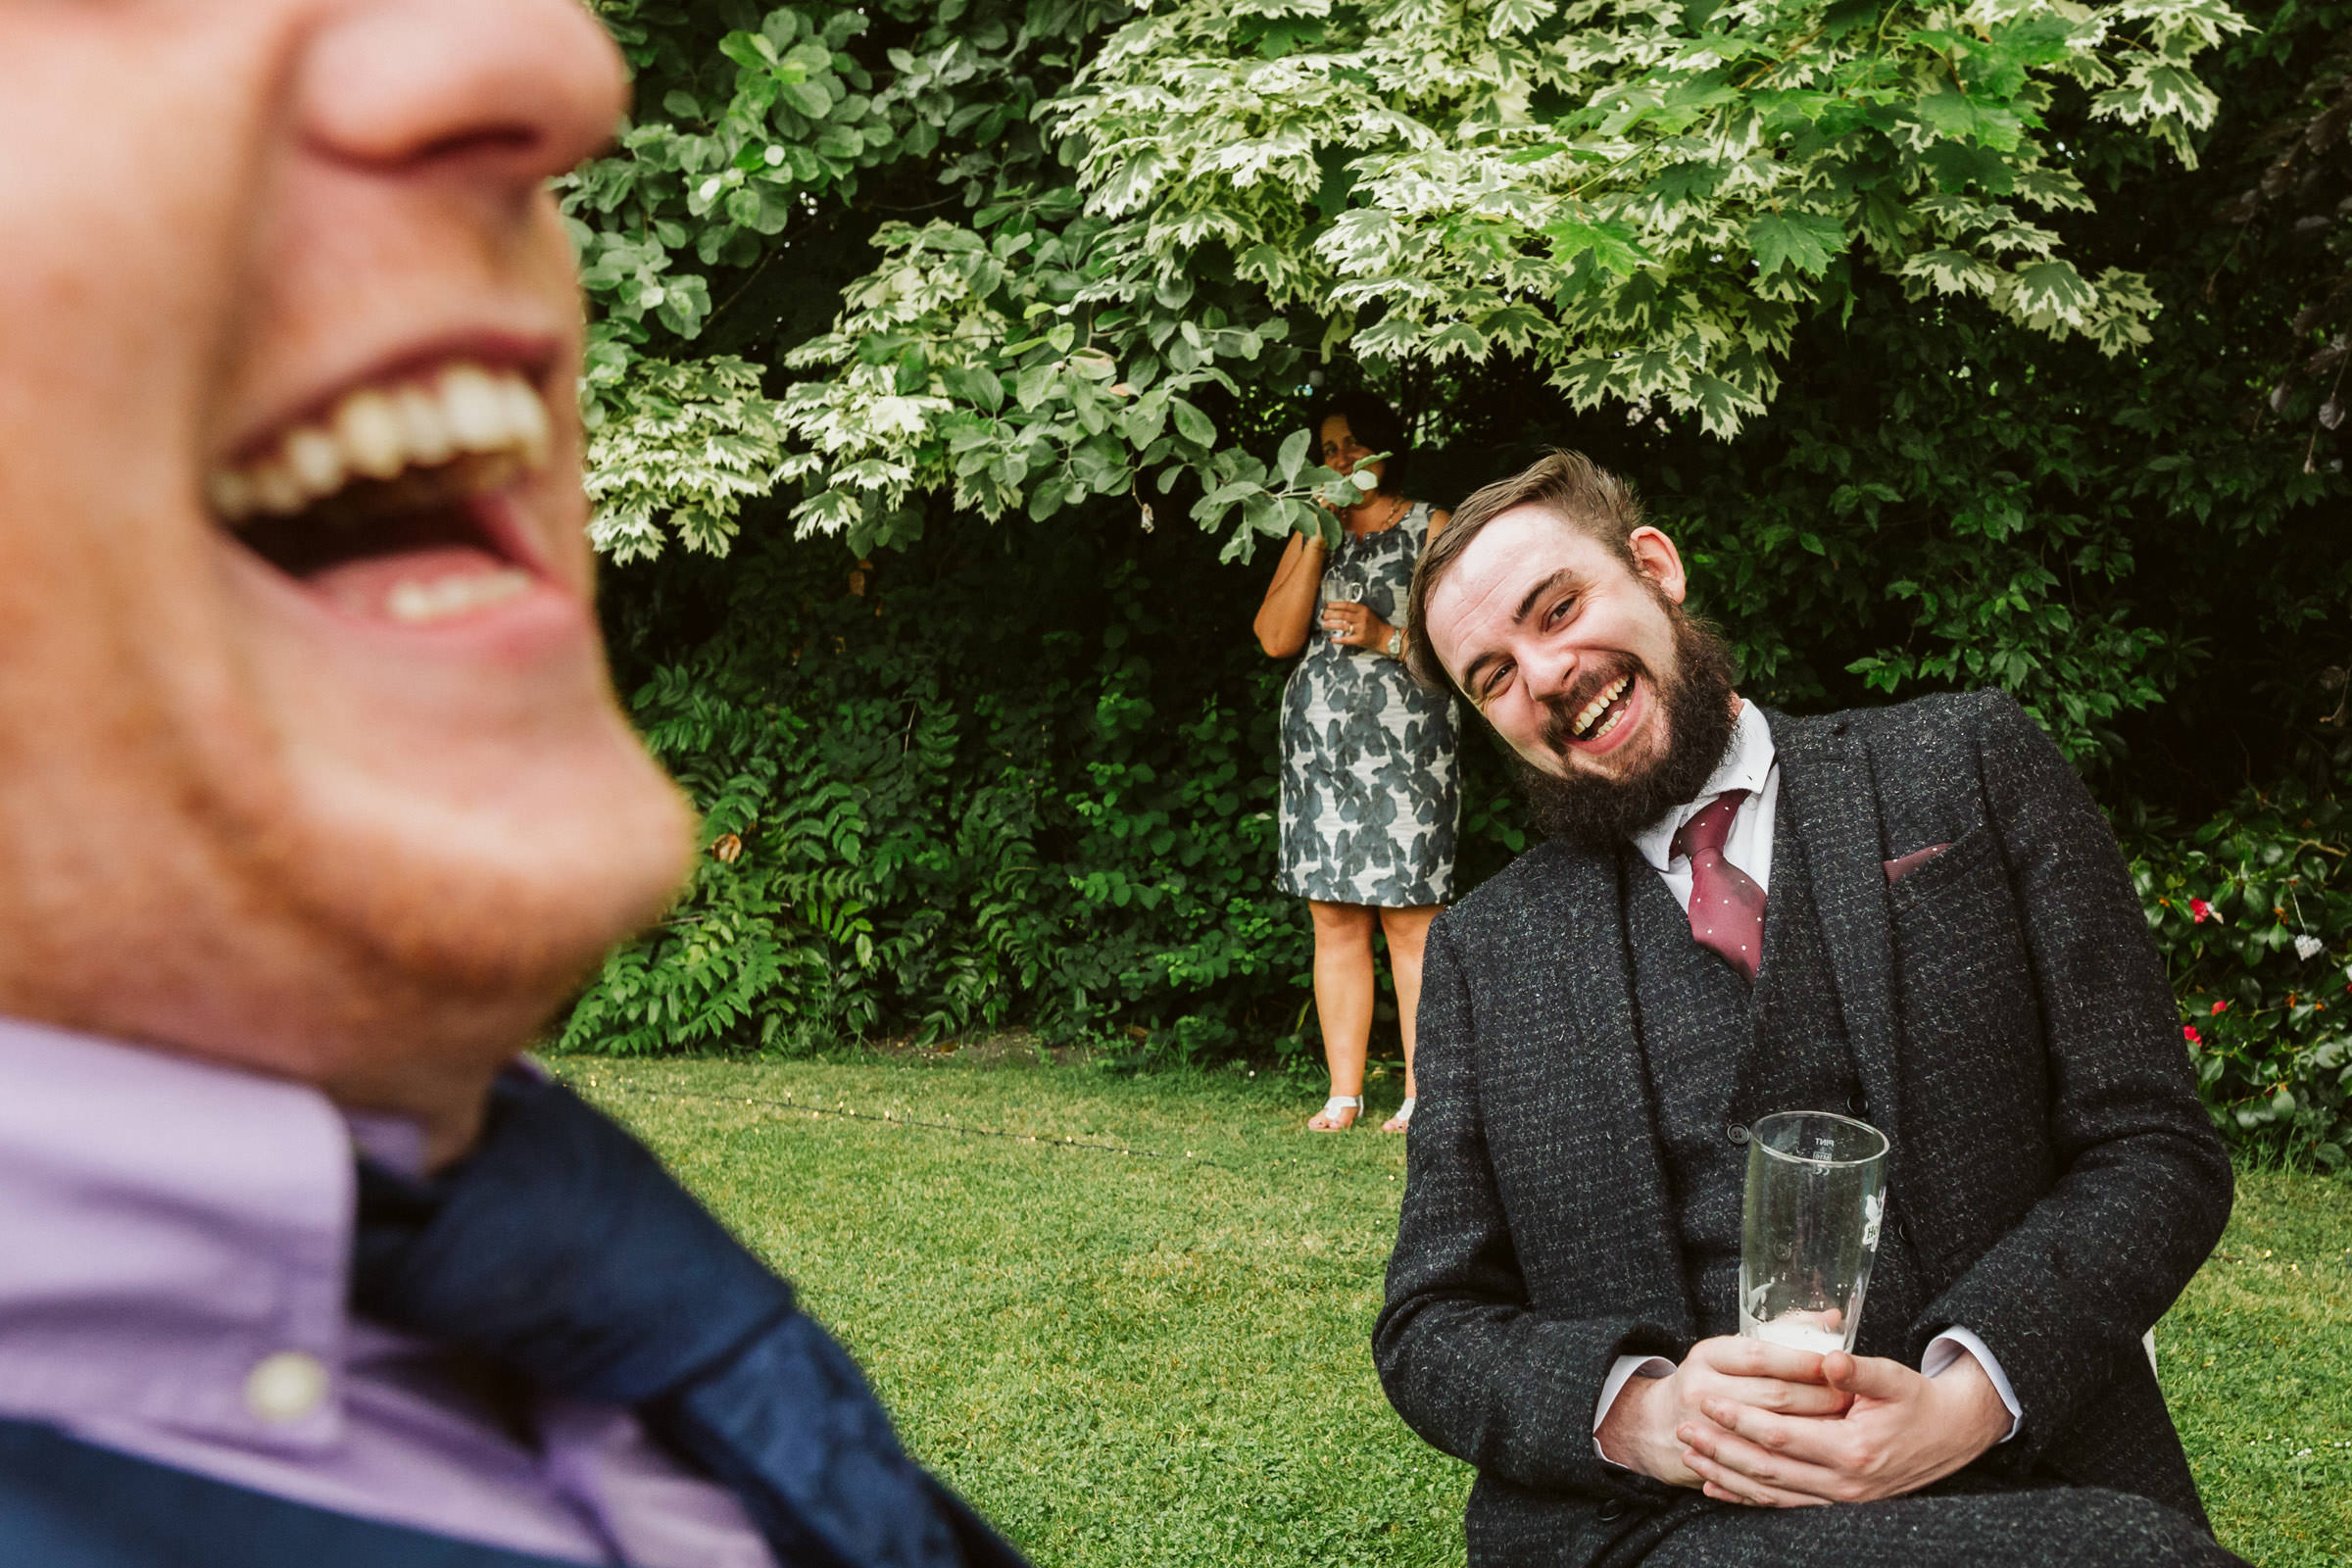 Laughter in the garden - photo by Lima Conlon Photography